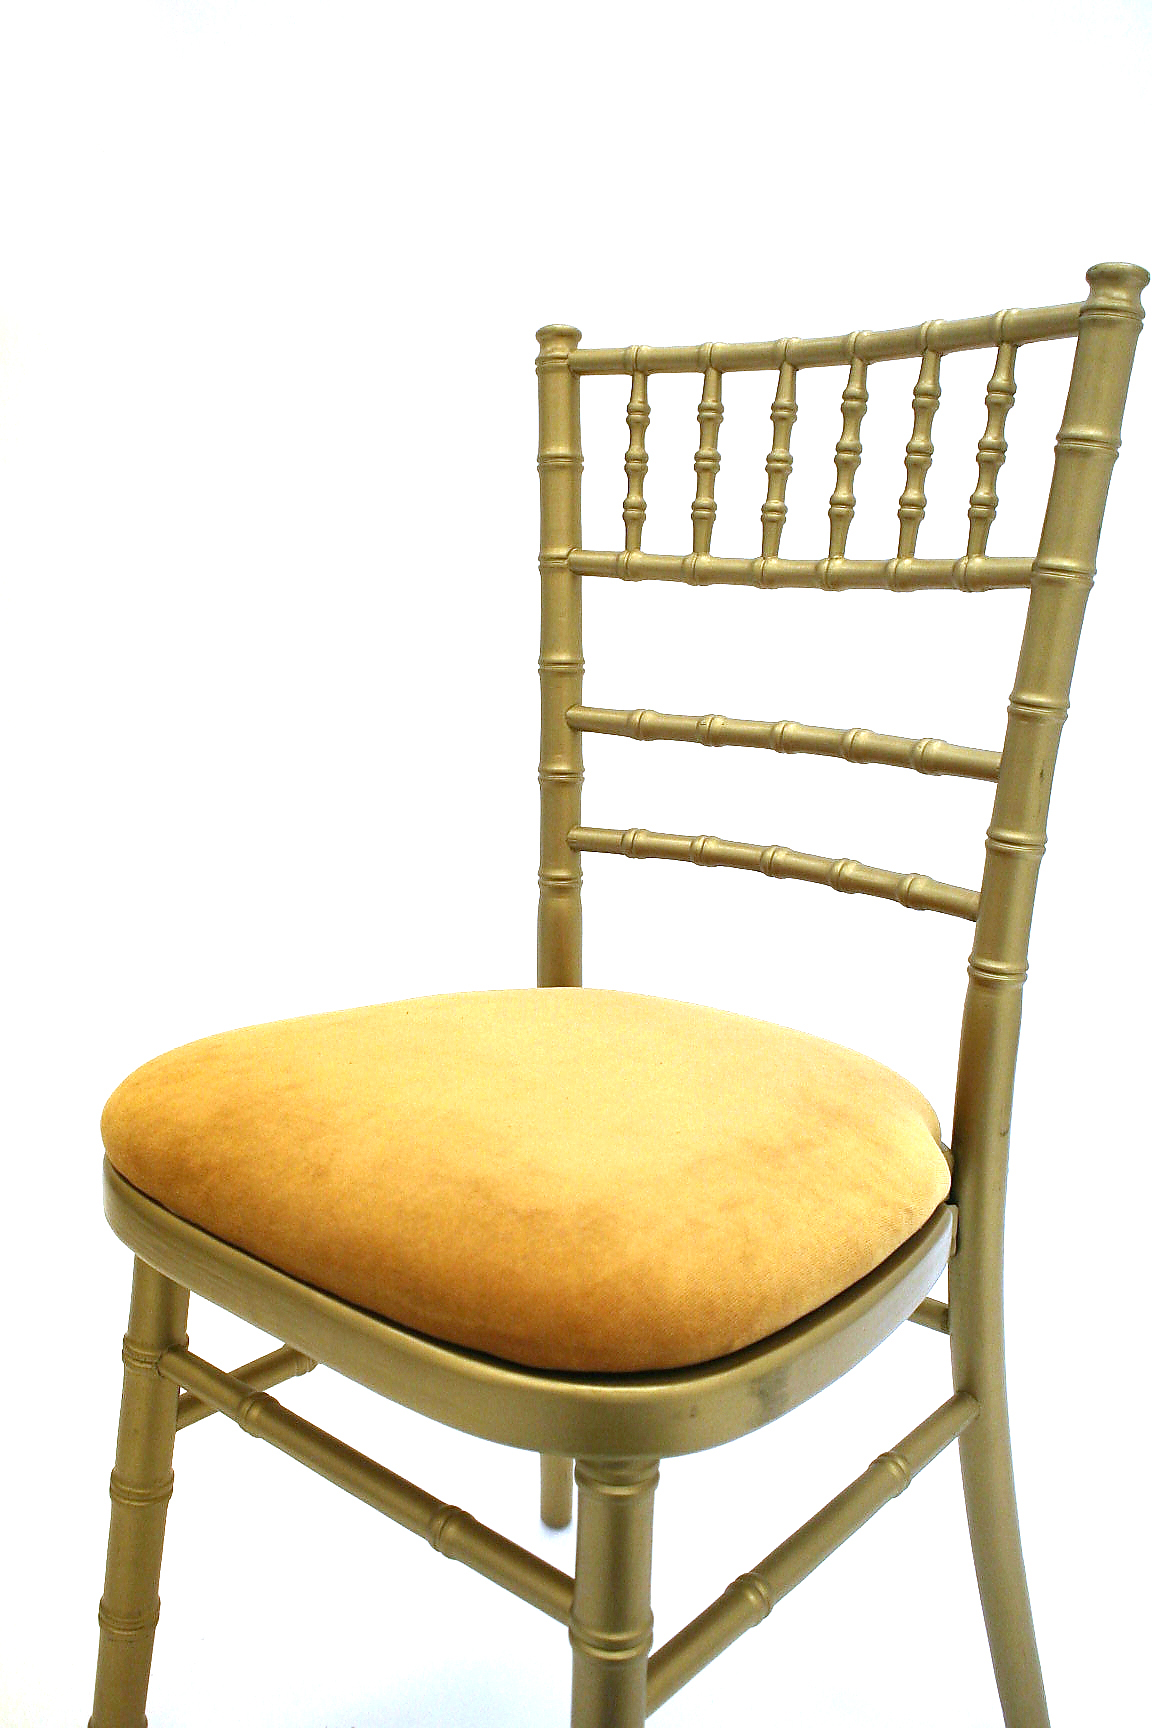 Gold wooden framed chiavari chair with a gold seat pad - BE Event Hire